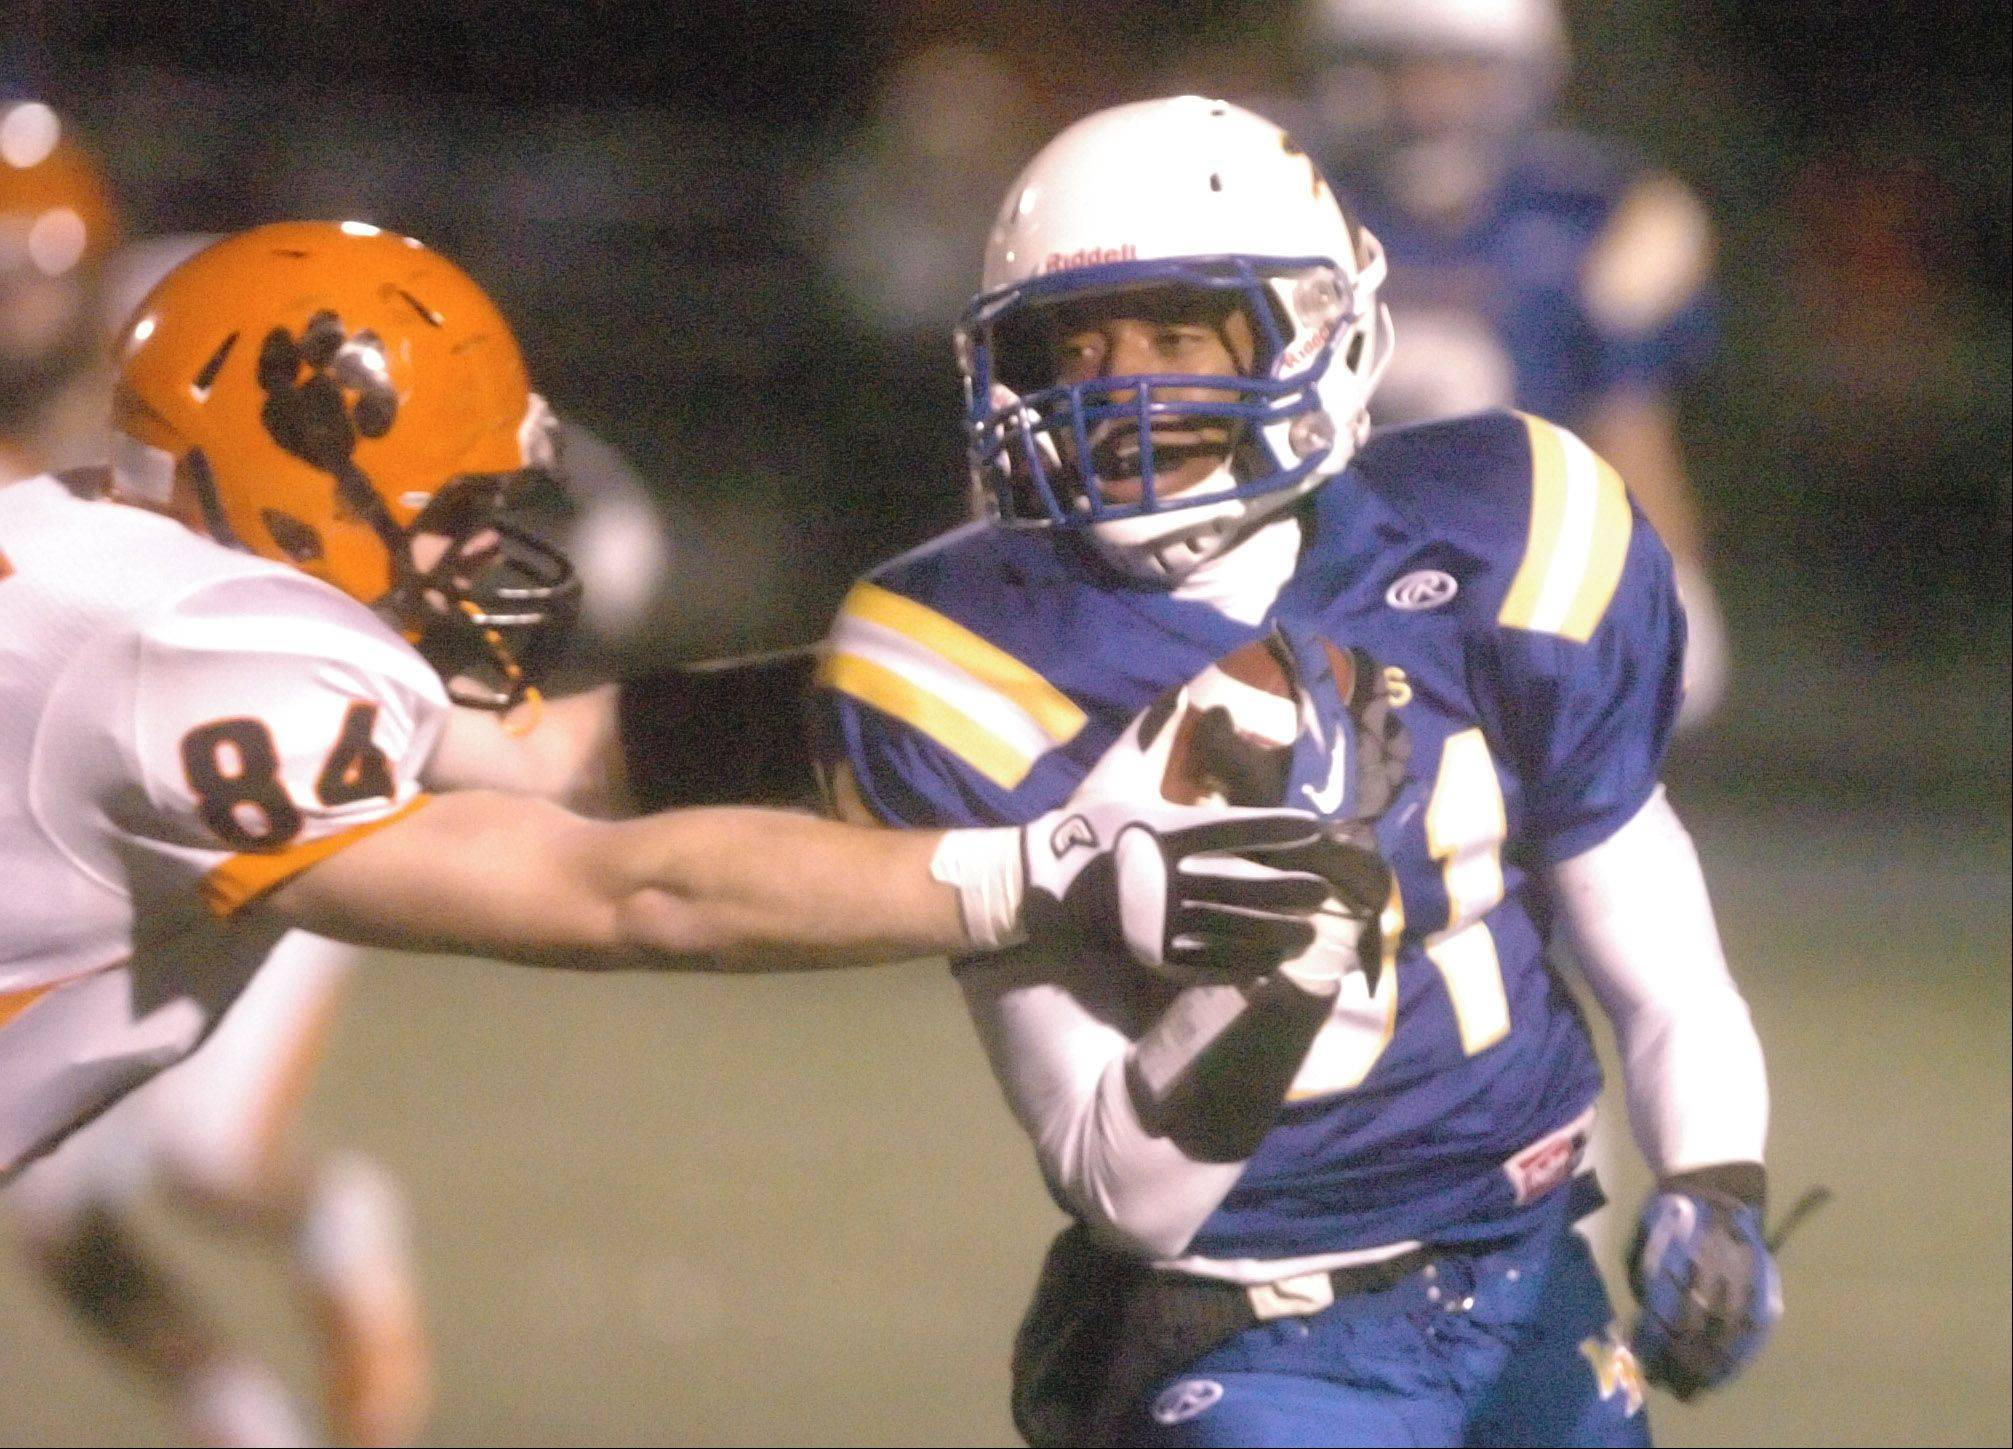 Brian Welch of Wheaton Warrenville South tries to stop Jaylen Howze of Wheaton North during the Wheaton Warrenville South at Wheaton North game Friday.